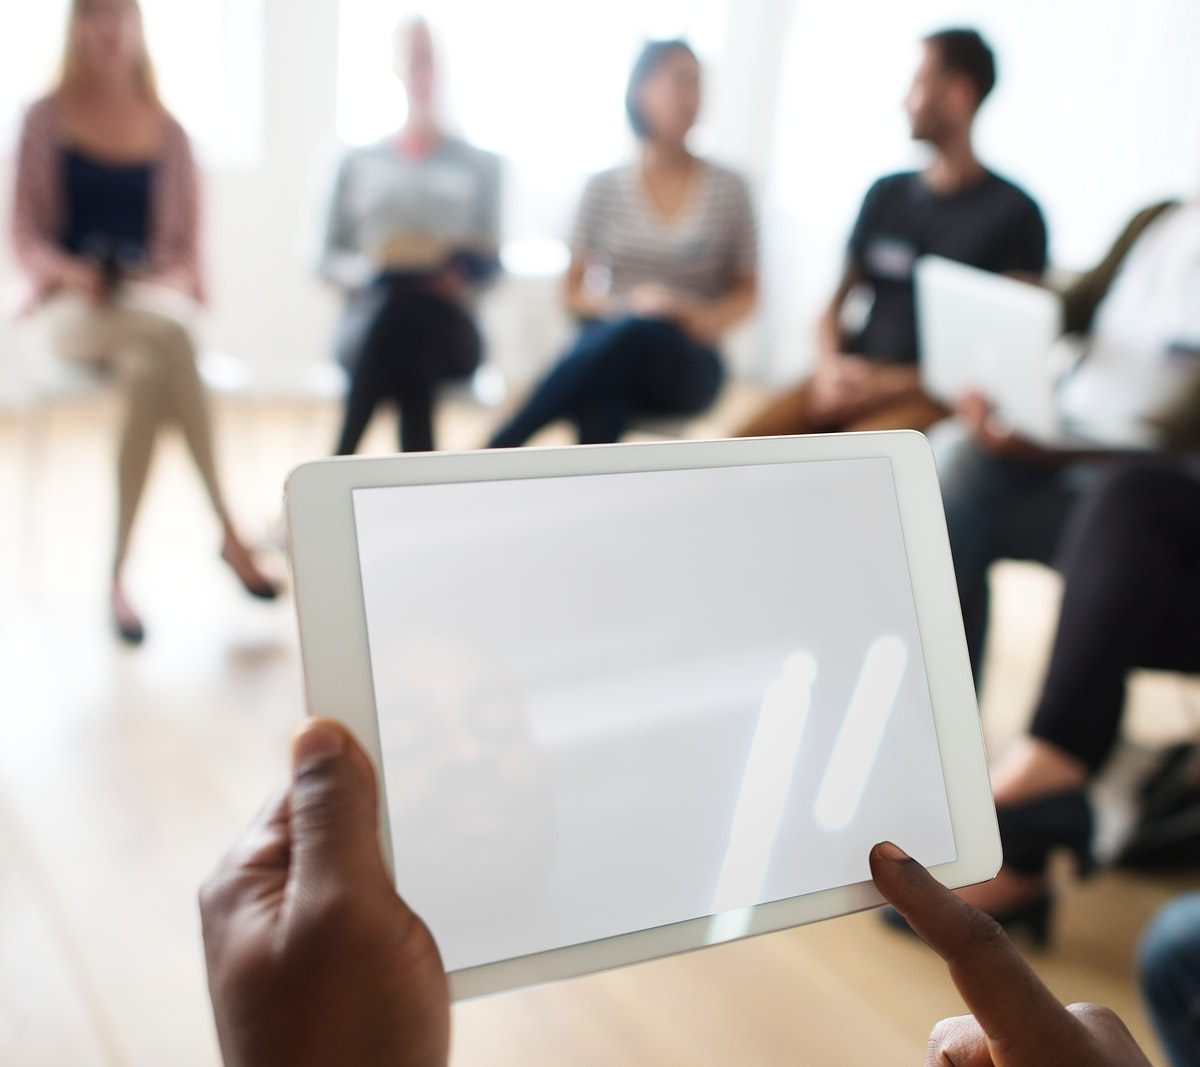 Tablet Networking Seminar Event Concept